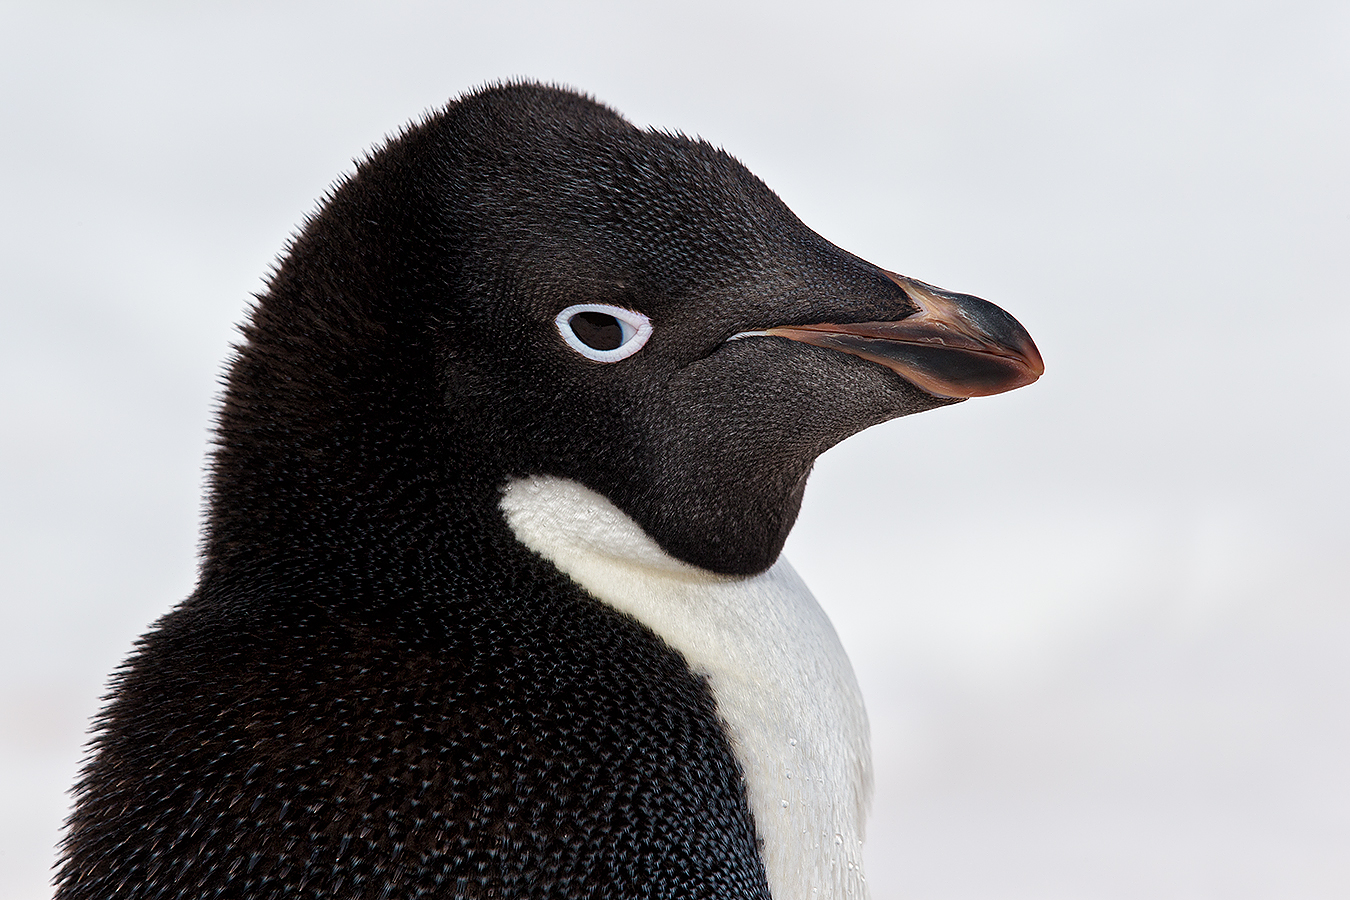 portrait_clemens-vanderwerf-adelie-penguin-head-portrait-against-white-snow_e7t4796-brown-bluff-antarctica